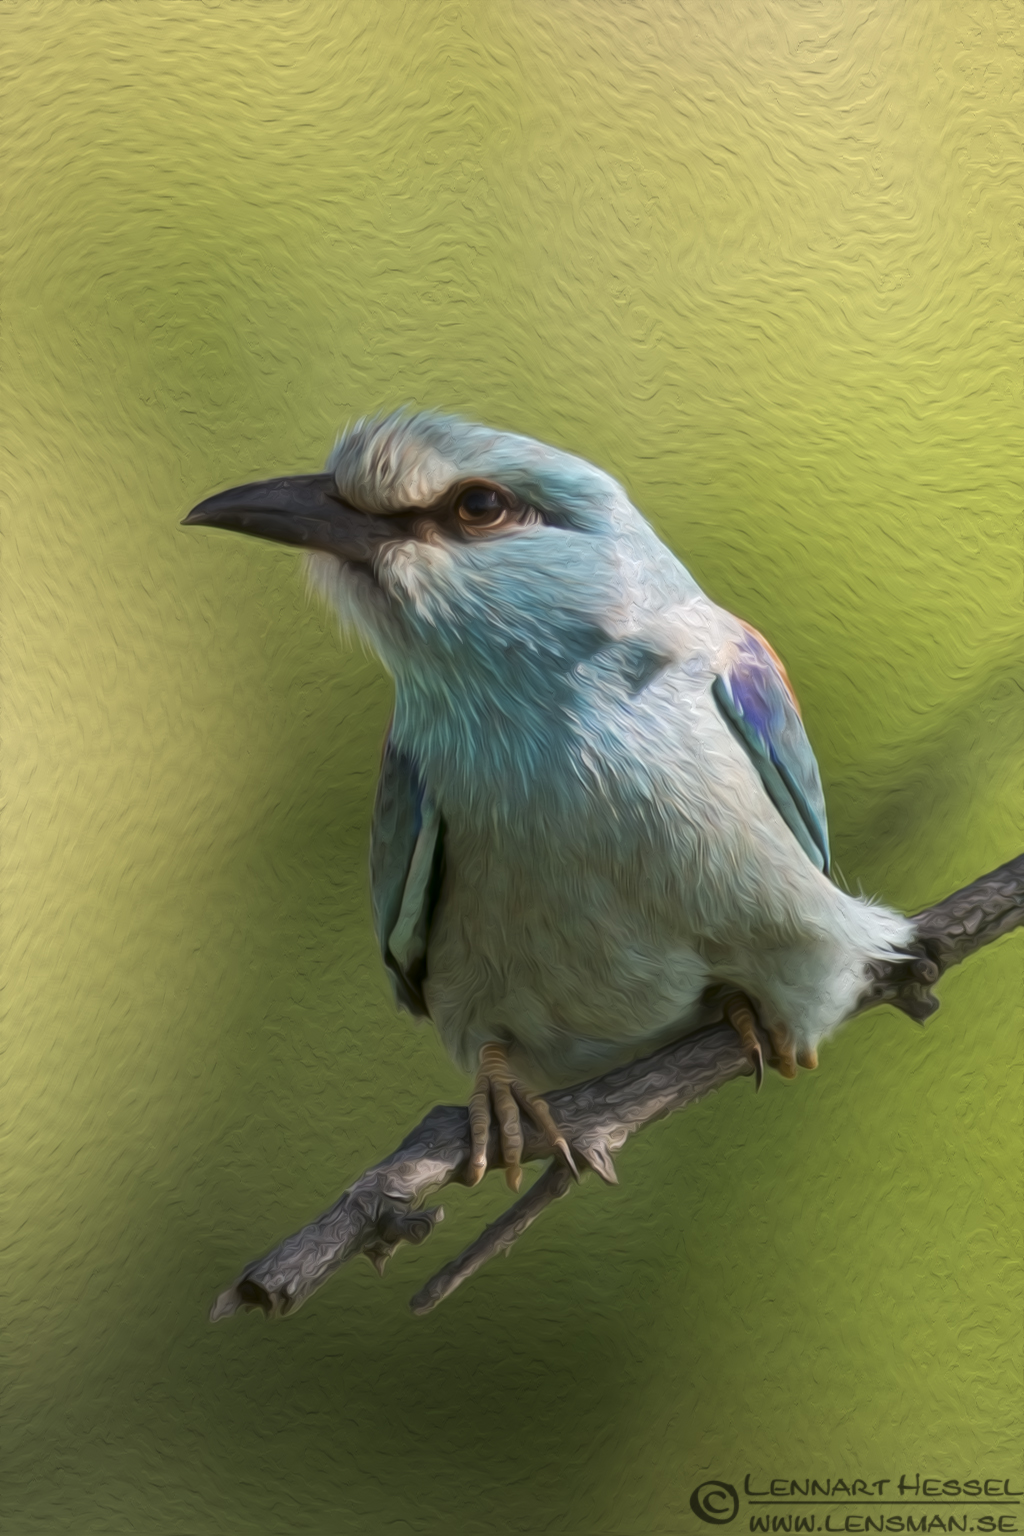 Oil painting of a European Roller from Hungary